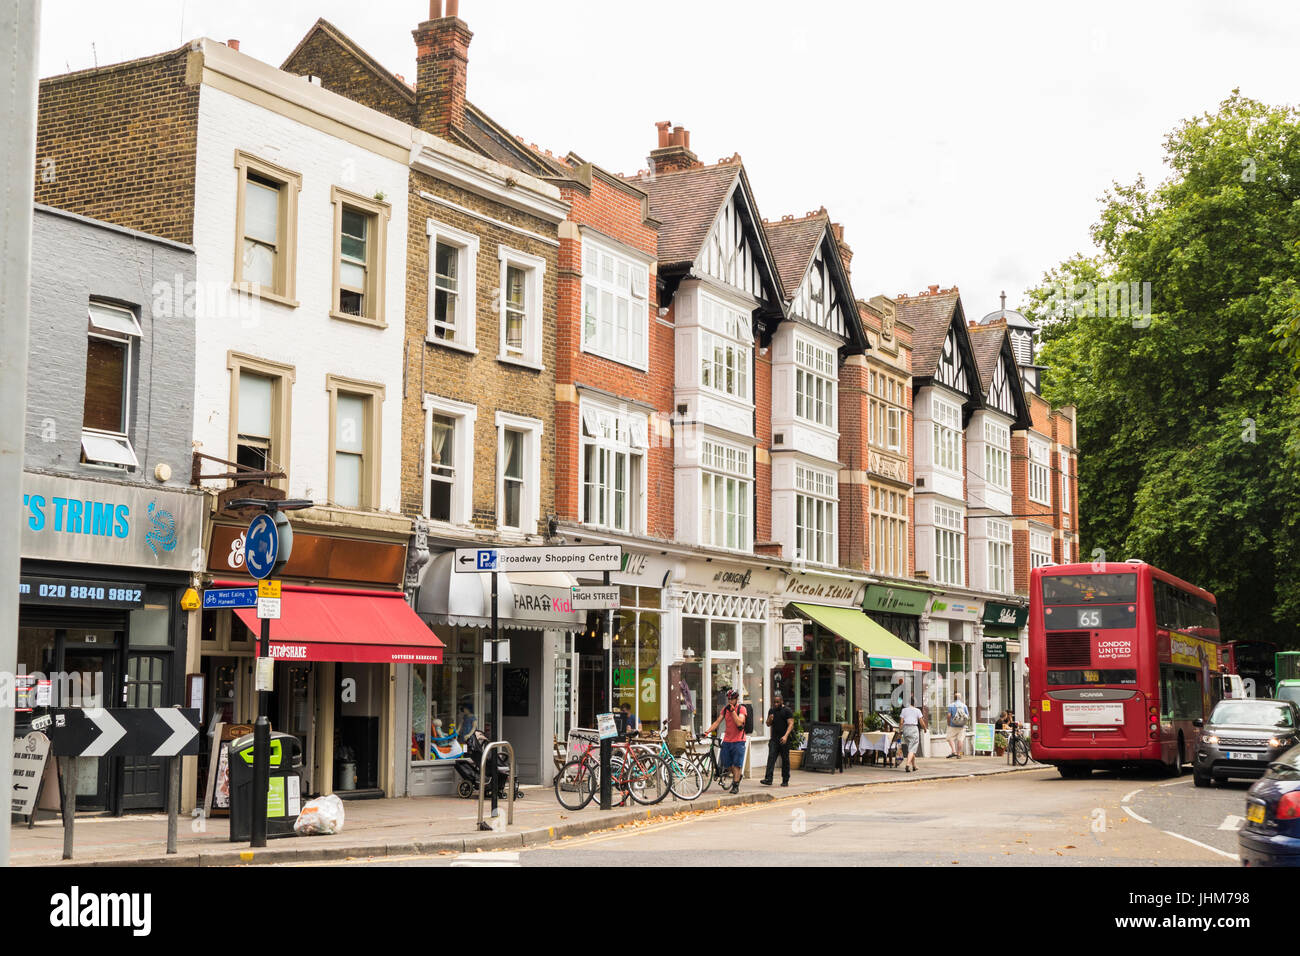 People, period architecture and shops in Ealing, London W5, England, UK. - Stock Image